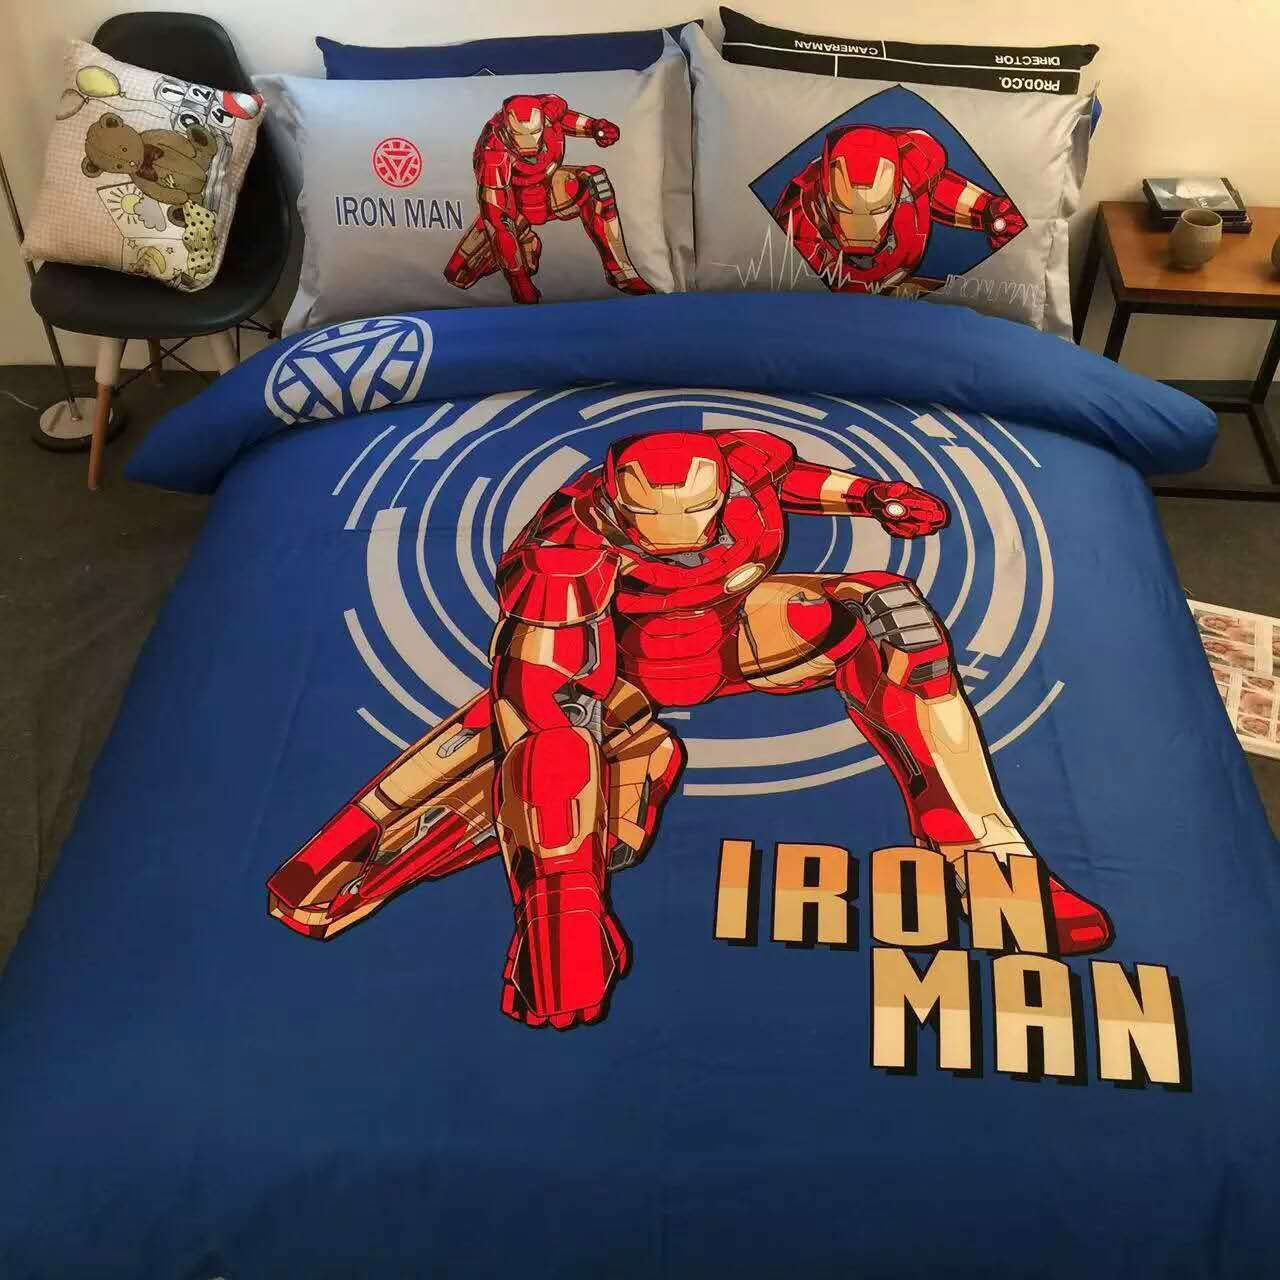 Sport Do All Seasons Iron Man Bedding Sets Stereo Pattern Pure Cotton Cartoon Duvet Cover And F Kids Bedding Sets Boys Kids Twin Bedding Sets Kids Bedding Sets